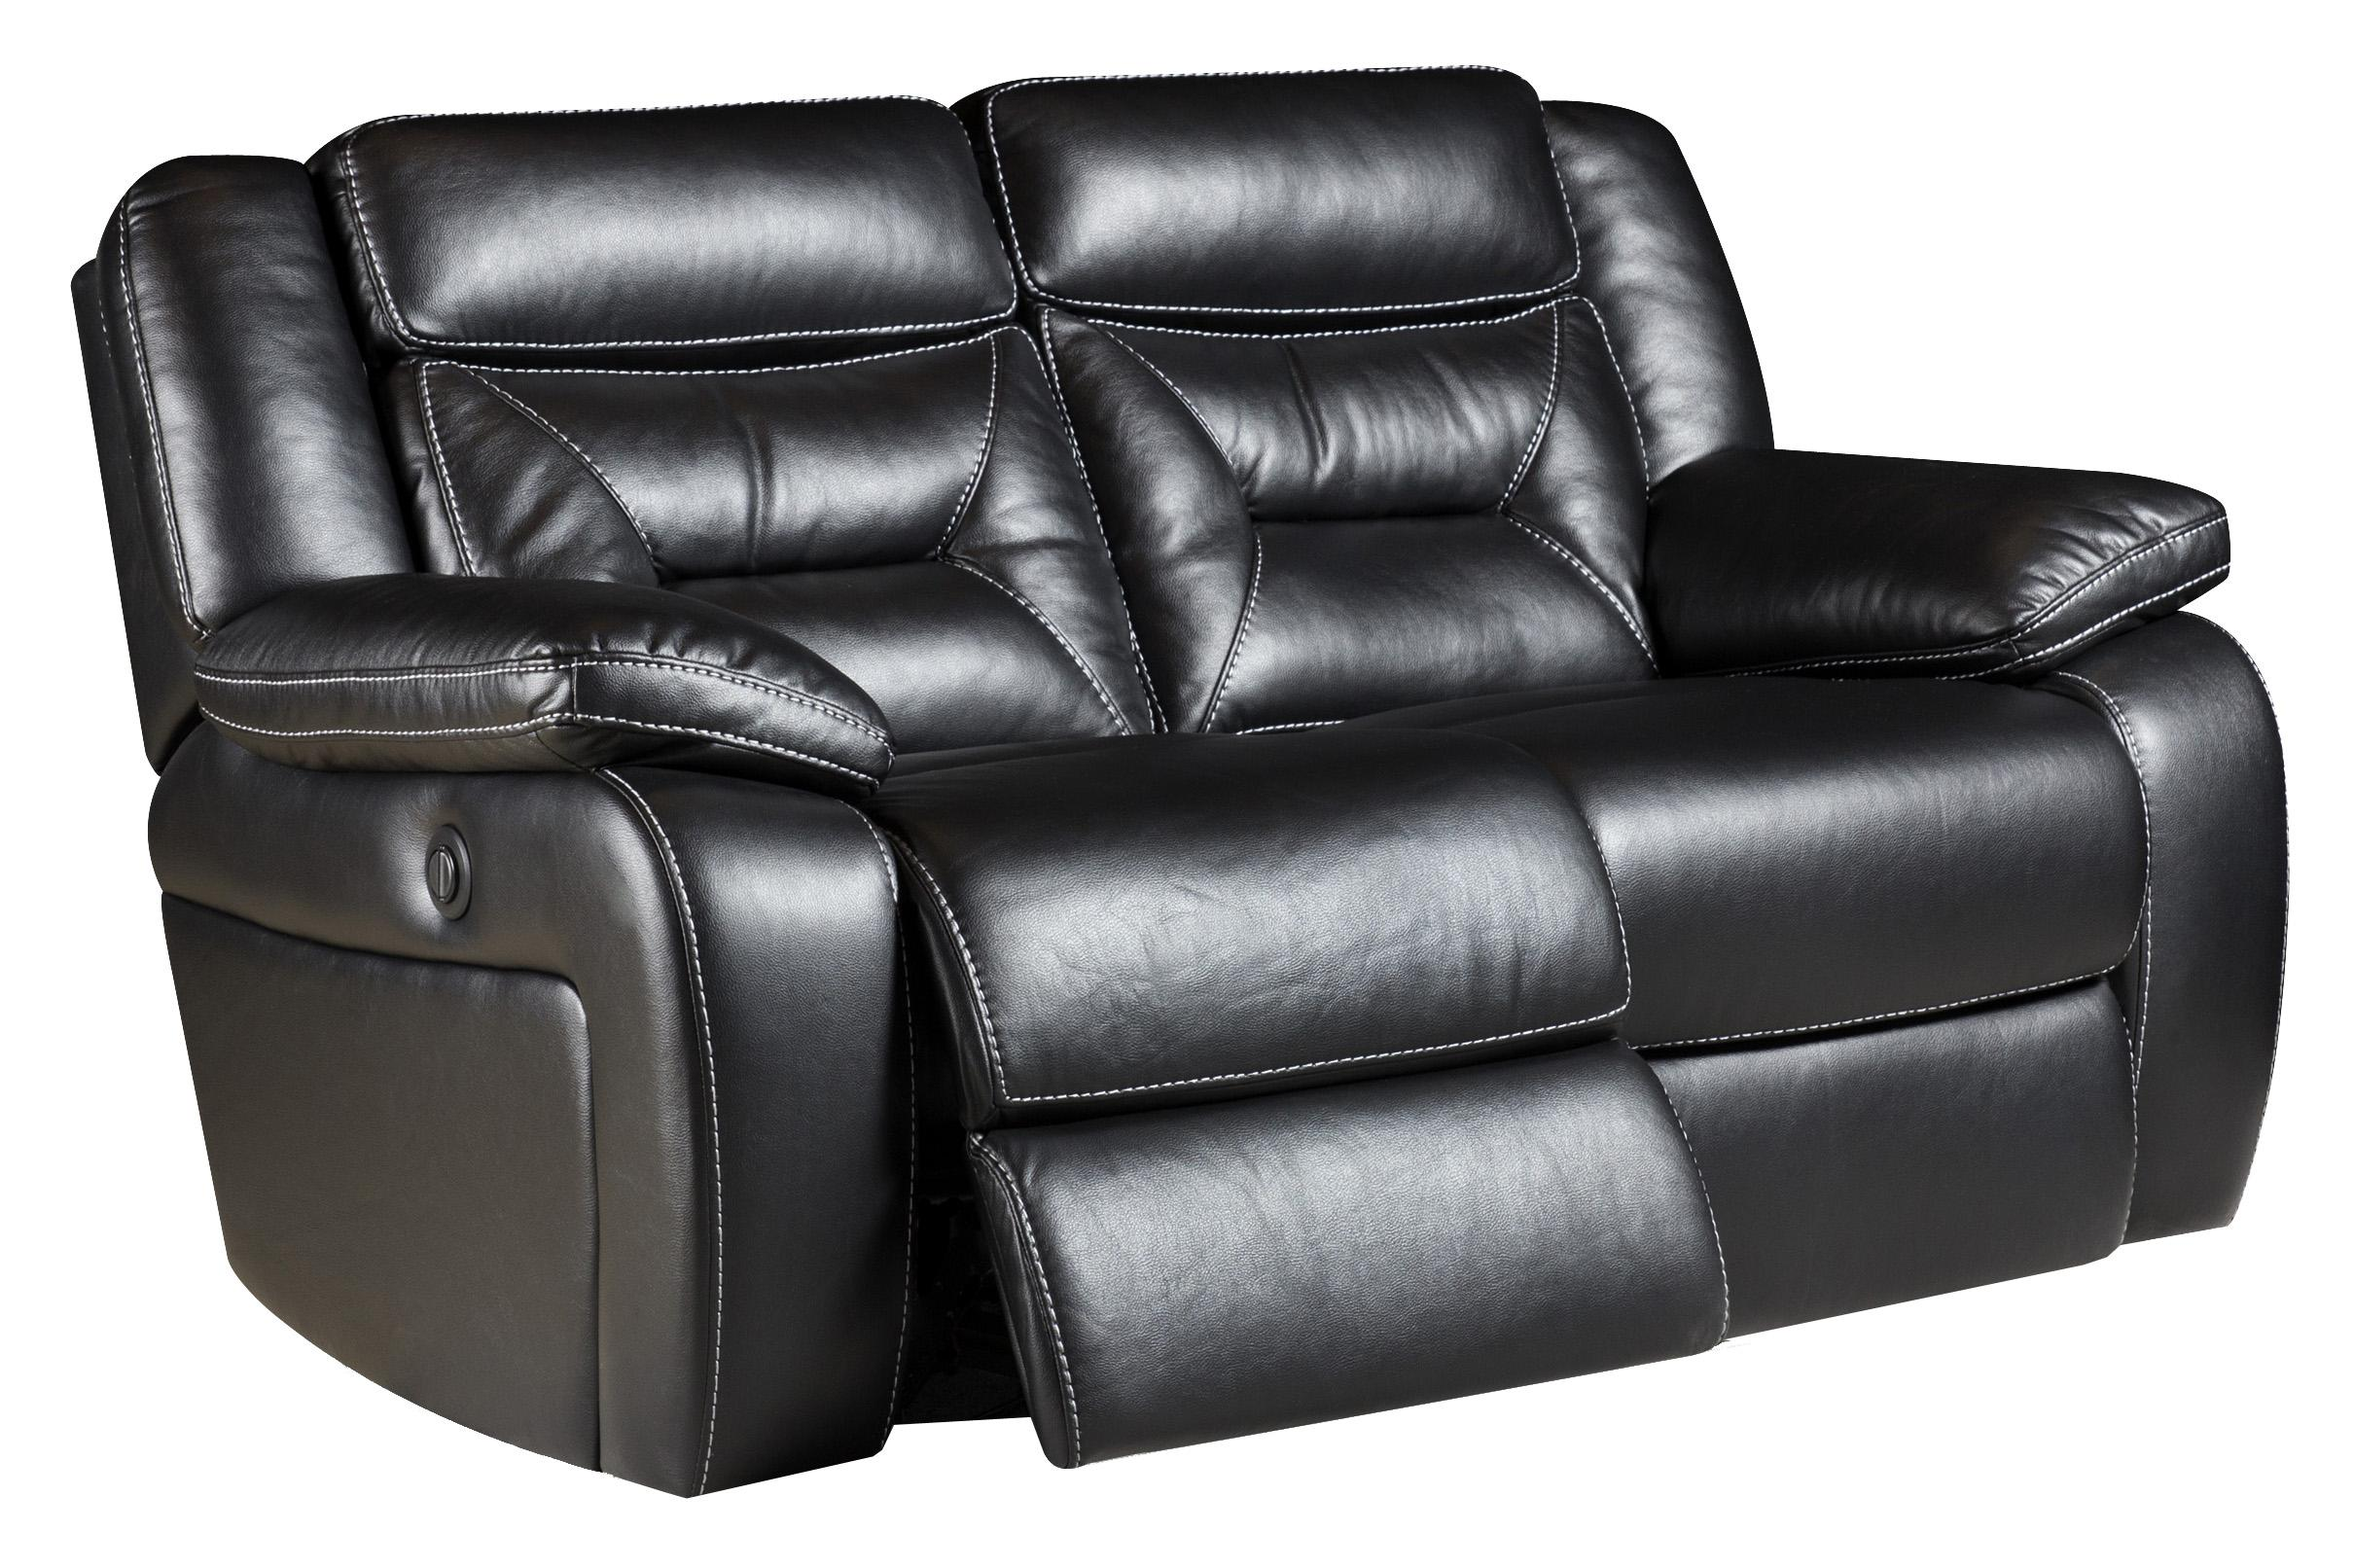 and bob large room s p pacifica discount furniture gallery power living reclining recliners loveseat